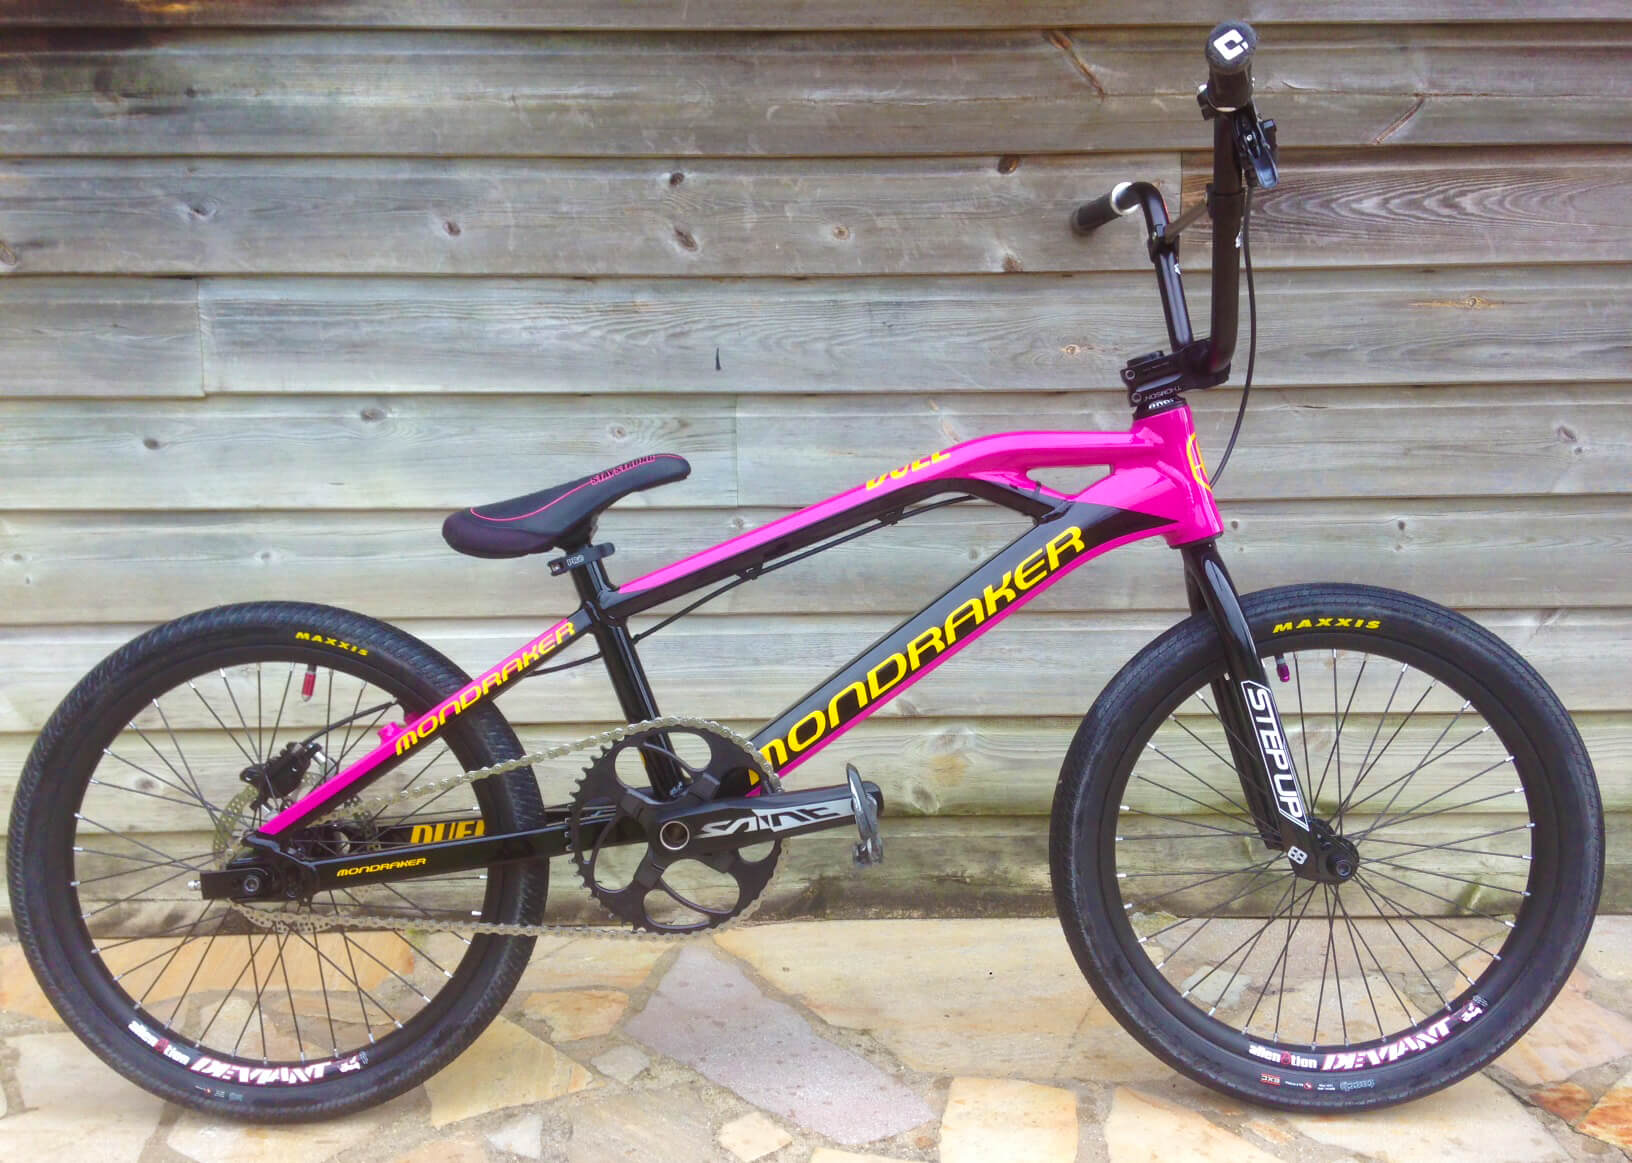 Charly Gaillard Mondraker Bike Check Fifteen BMX